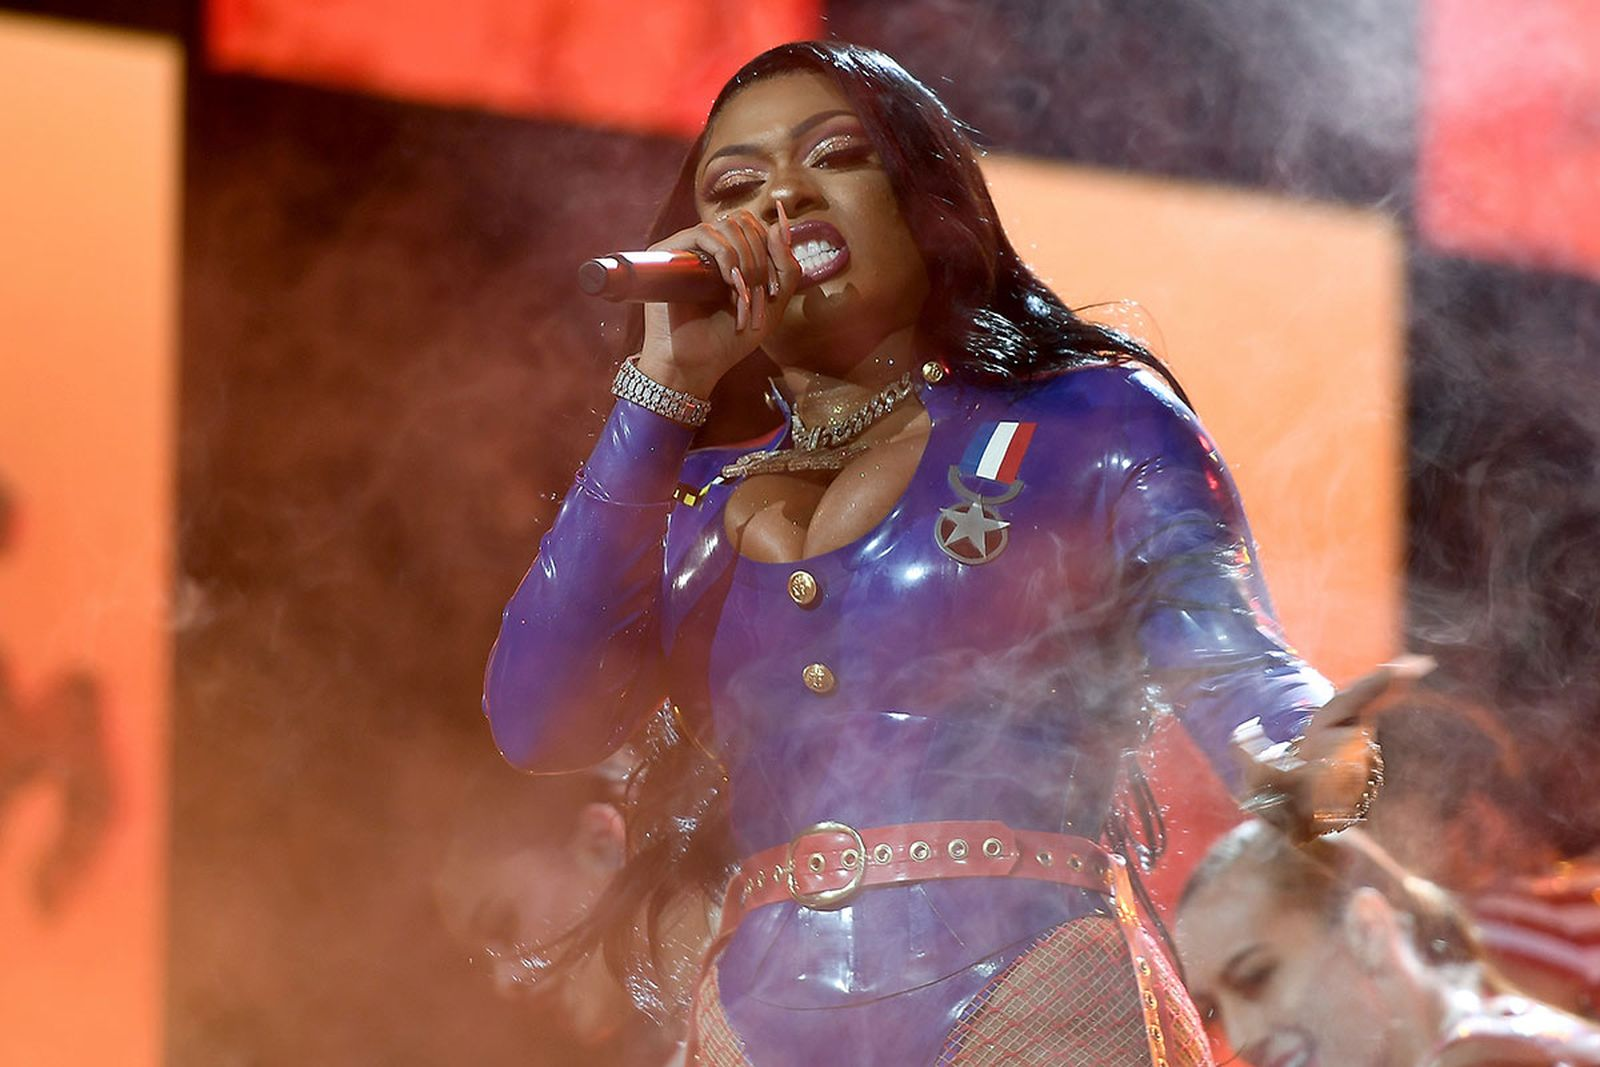 Megan thee stallion performs blue latex outfit